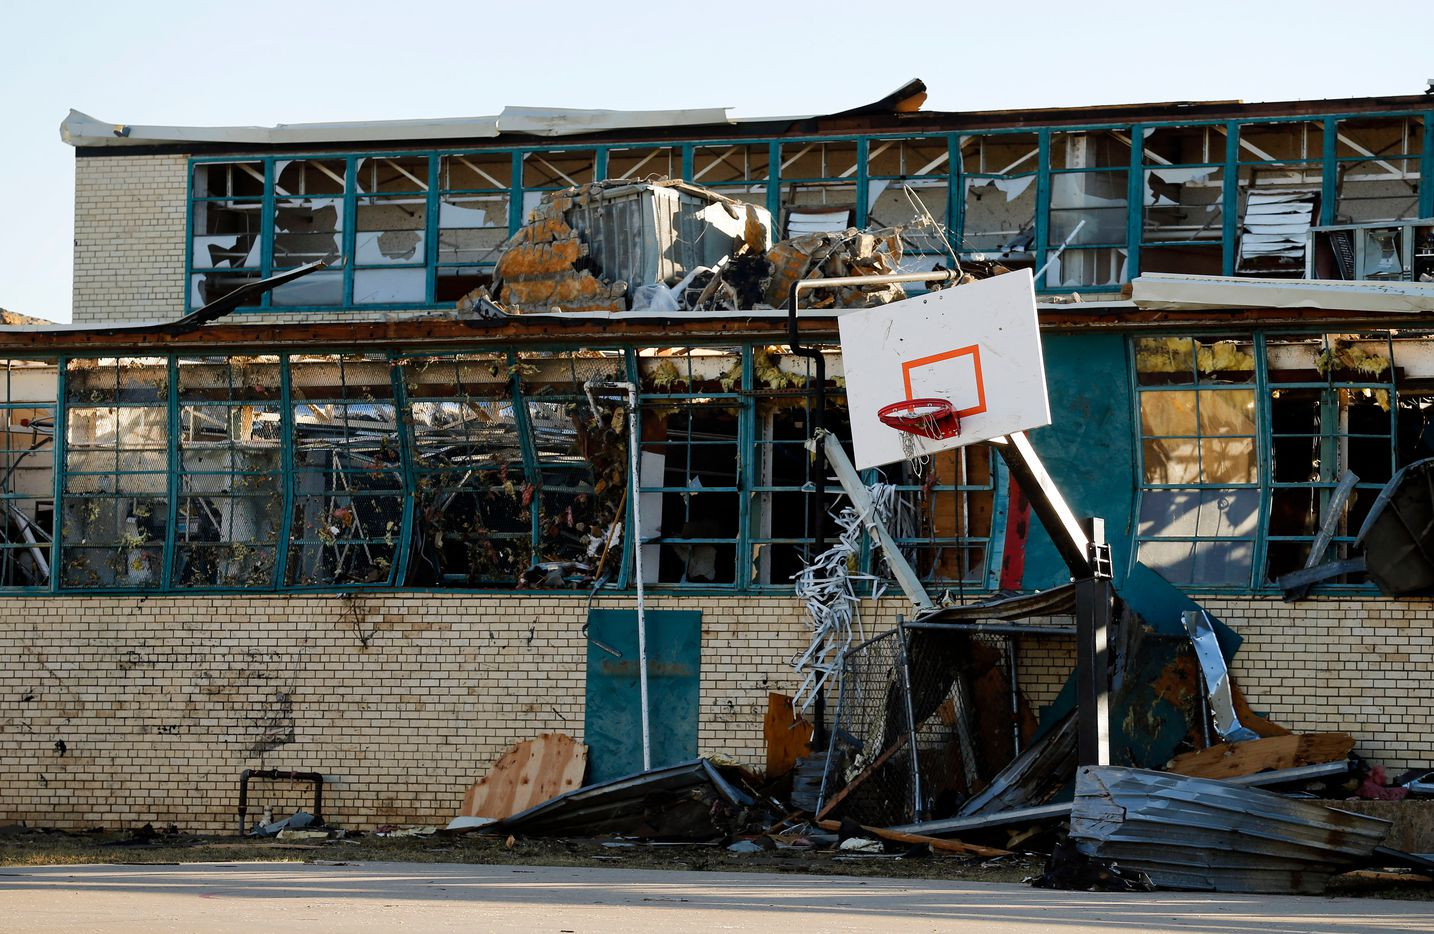 The backside of Cary Jr. High School took a direct hit with flying debris from the tornado in Dallas, Monday, October 21, 2019. (Tom Fox/The Dallas Morning News)